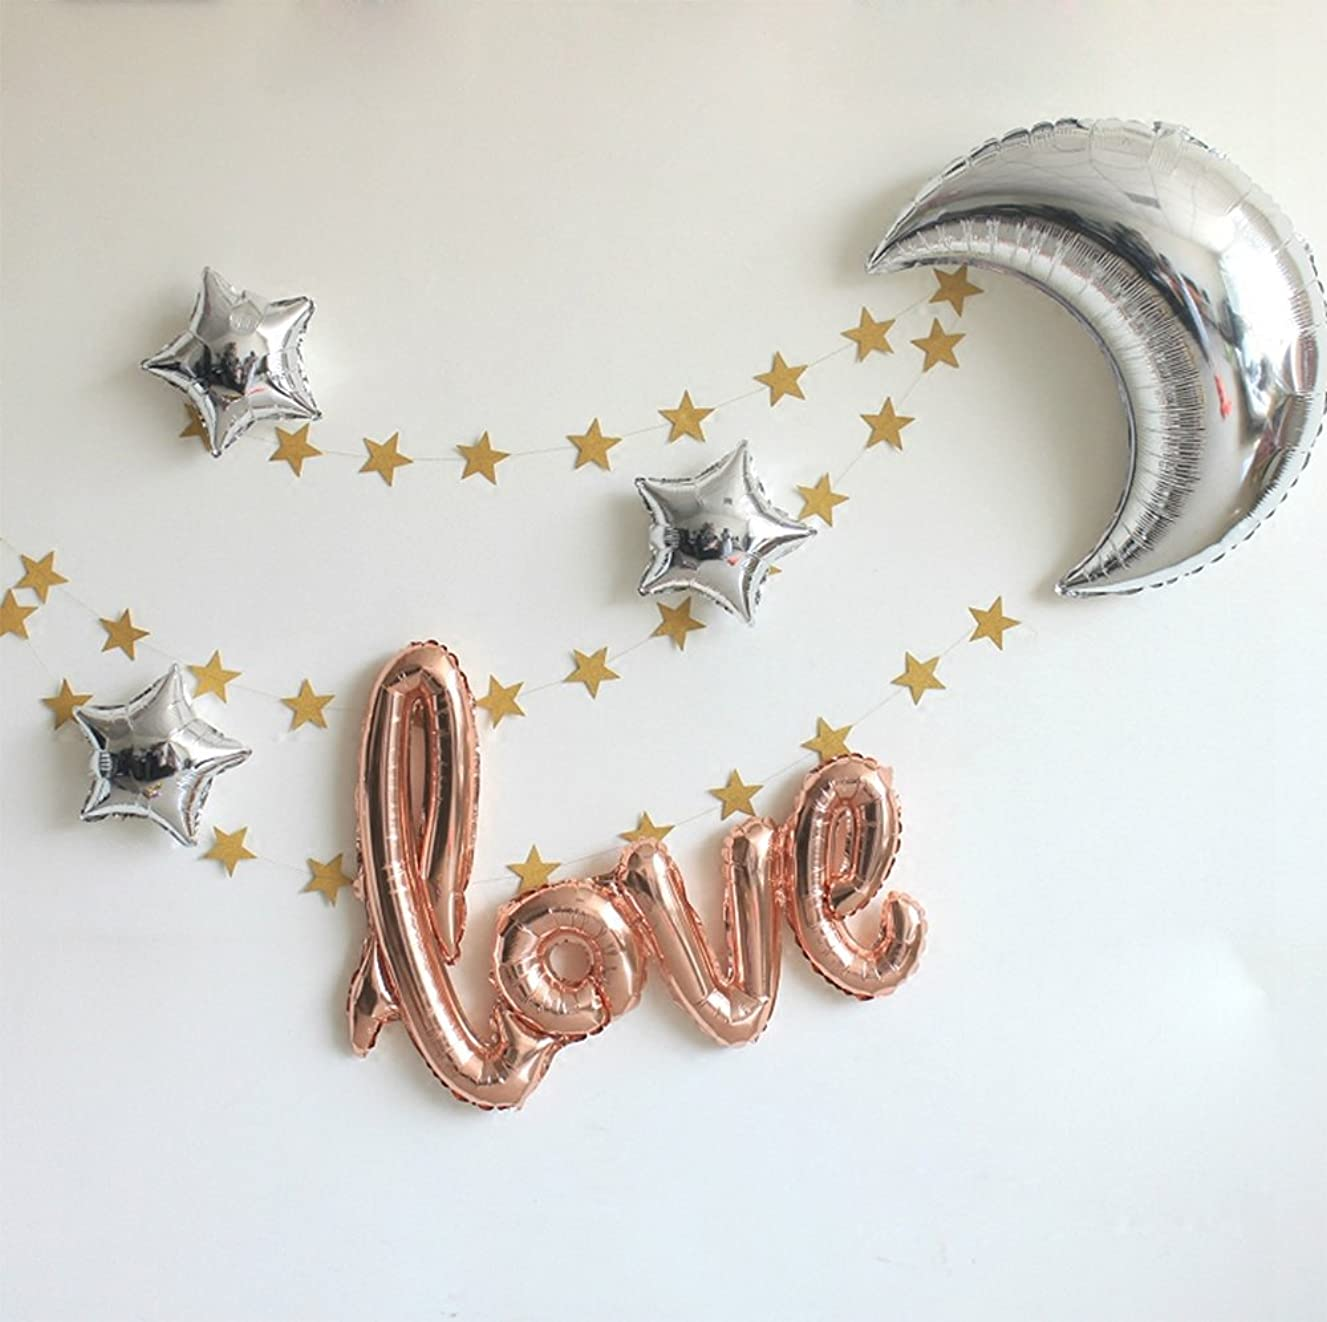 """42 Inch """"Love"""" and 36 Inch Moon Large Size Foil Balloons Air-Filled/Helium Balloon for Party Show Performance Wedding Baby Shower Window Dressing Birthday Anniversary Decoration (Champagne Gold Set)"""